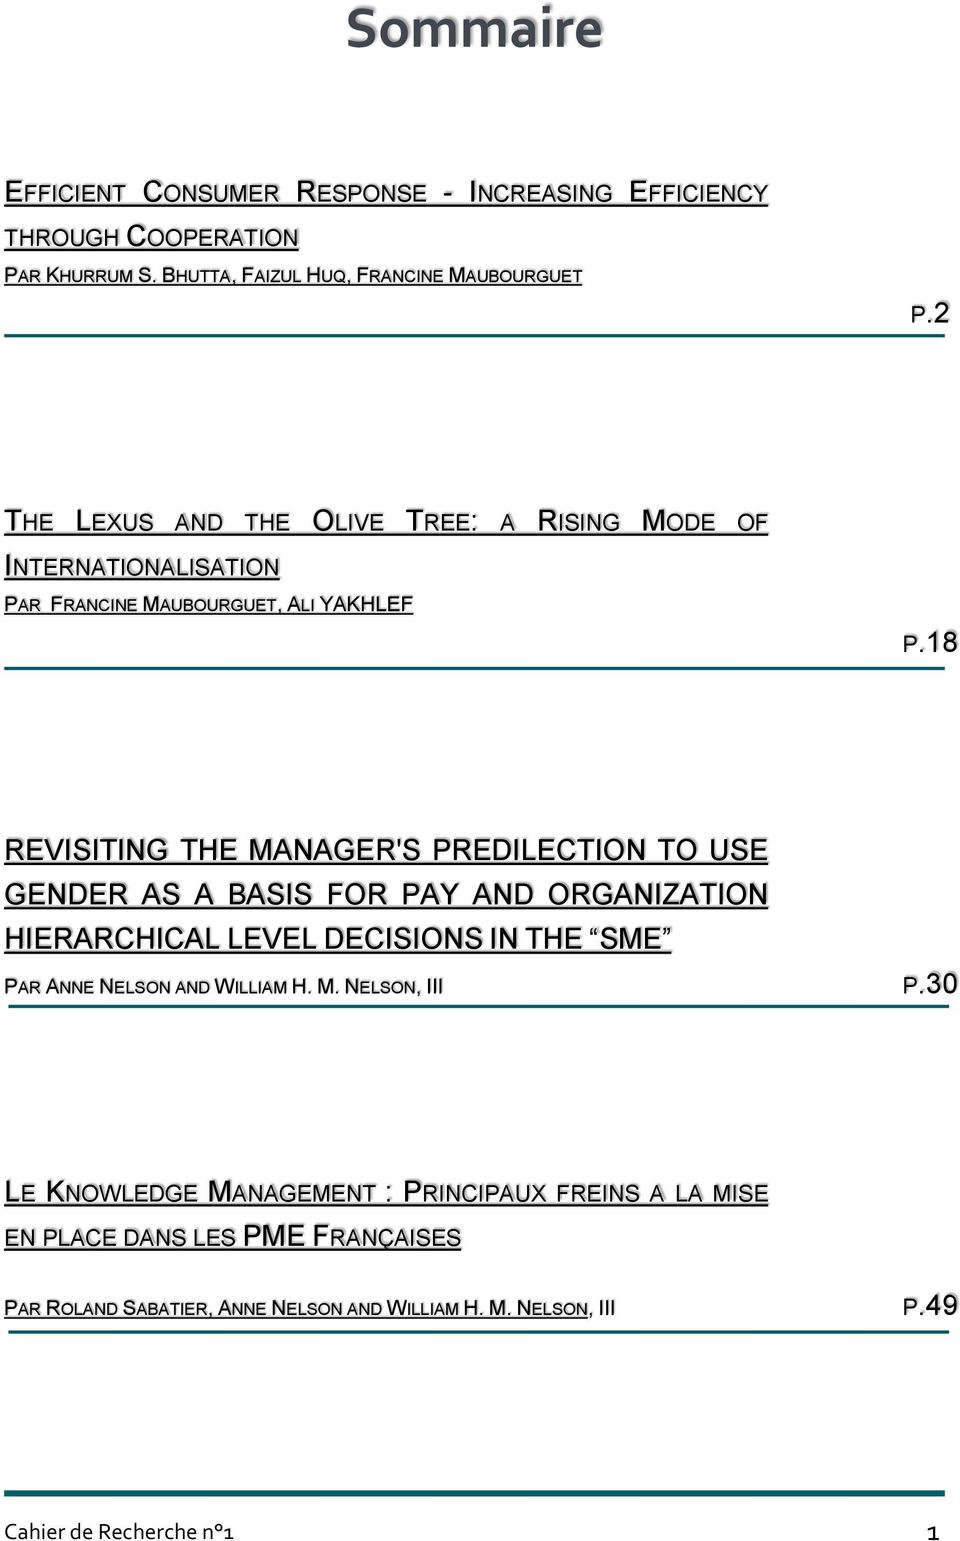 18 REVISITING THE MANAGER'S PREDILECTION TO USE GENDER AS A BASIS FOR PAY AND ORGANIZATION HIERARCHICAL LEVEL DECISIONS IN THE SME PAR ANNE NELSON AND